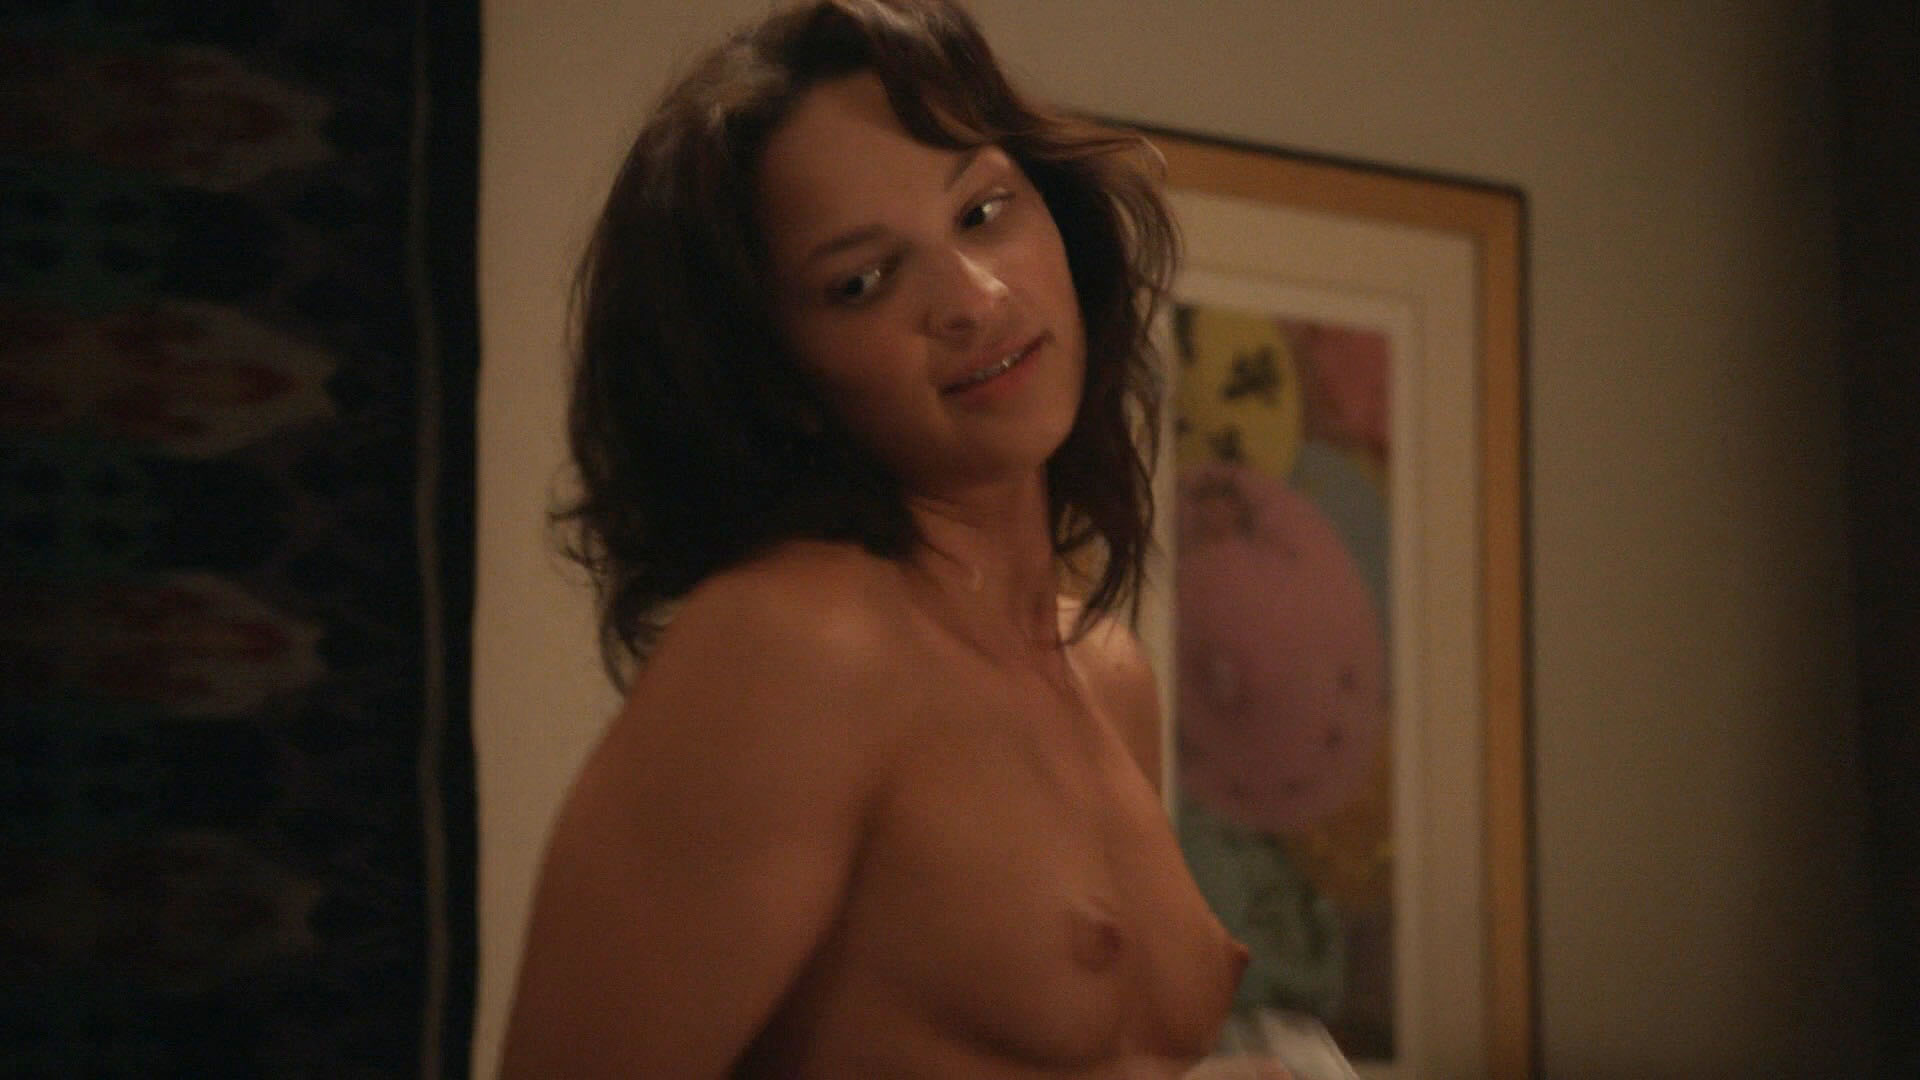 Ruby Modine – Shameless s07e05 (2016) HD 1080p